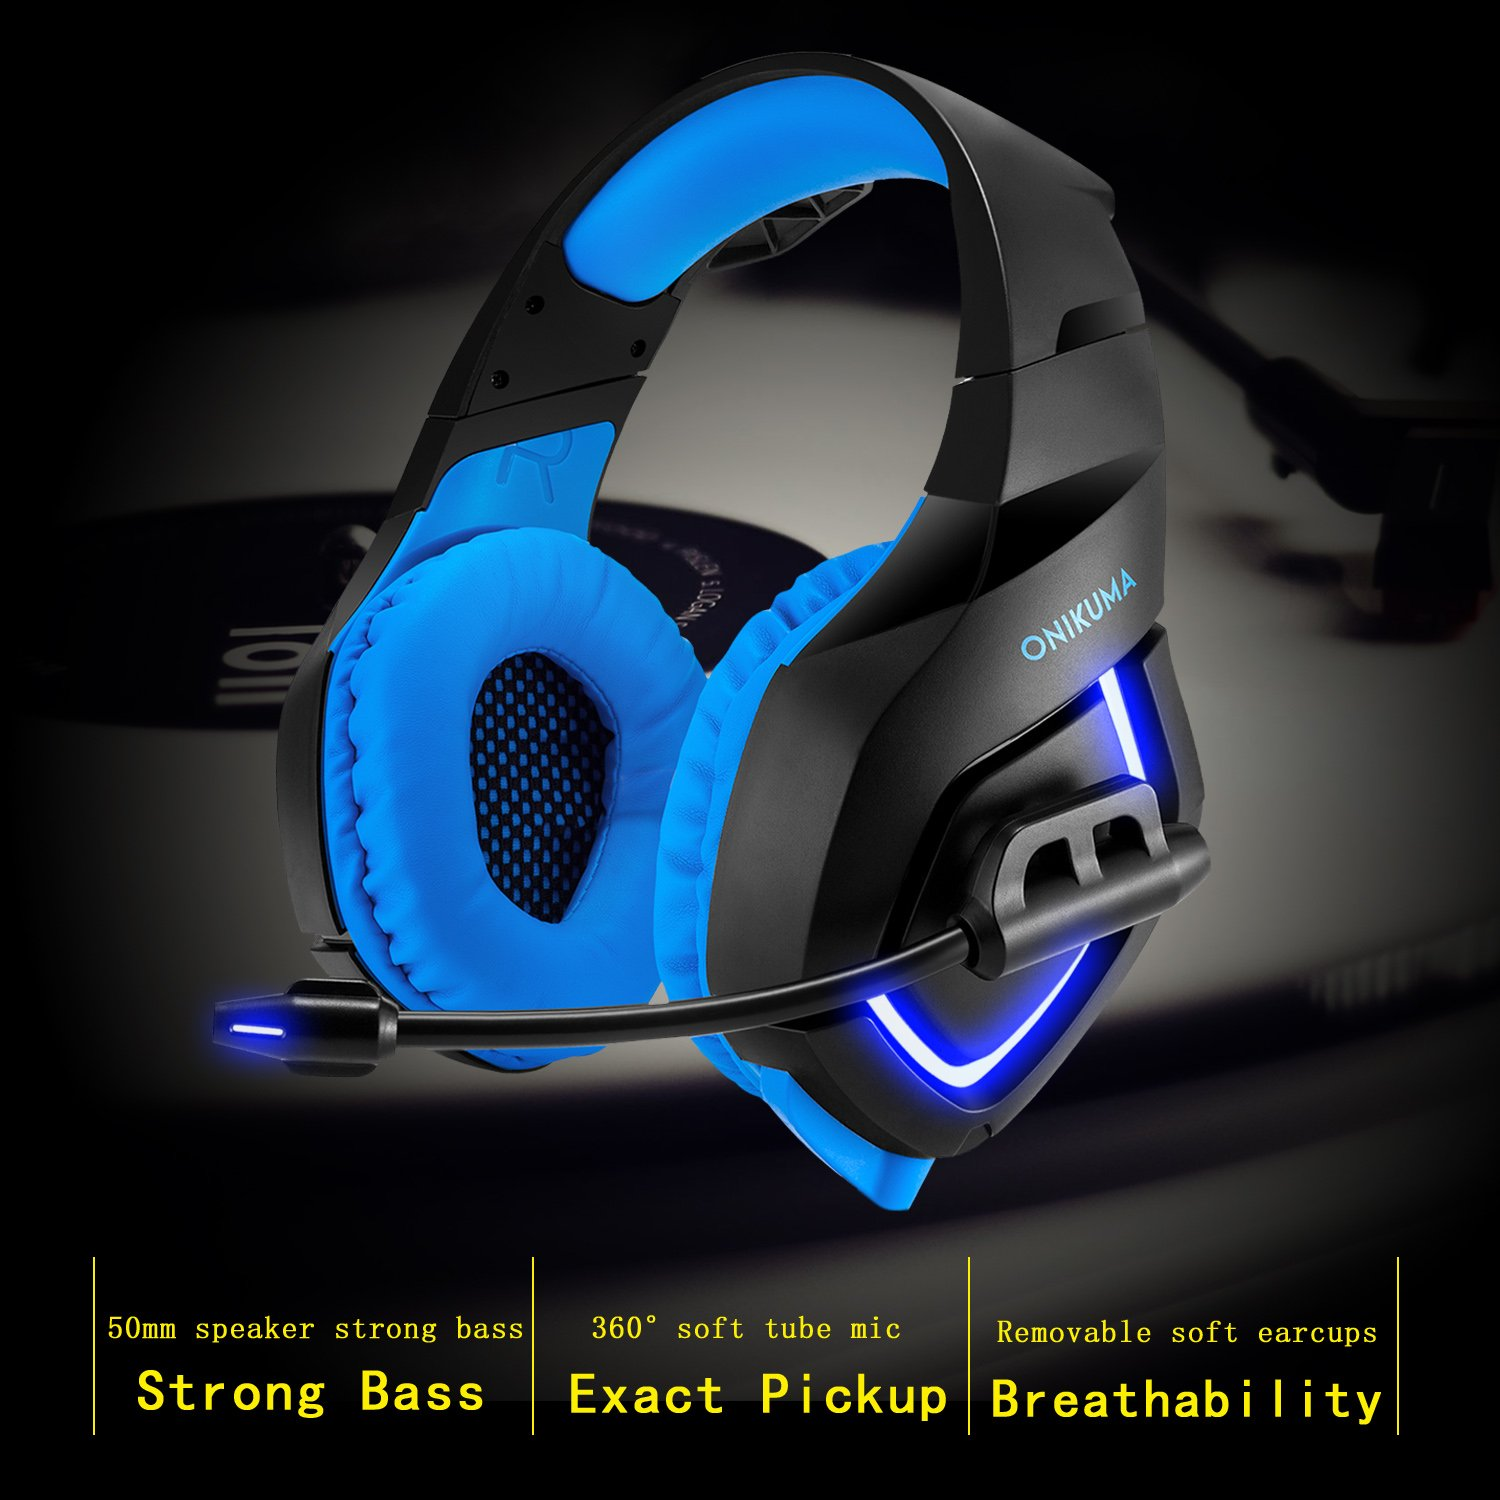 ZaKitane LED Light Gaming Headset PS4 MIC,3.5mm Over-Ear Headphone Earphone for X box One s Game Headsets Volume Control,Comfortable Stereo Bass Noise Cancelling USB Gamer PC Laptop Headphones